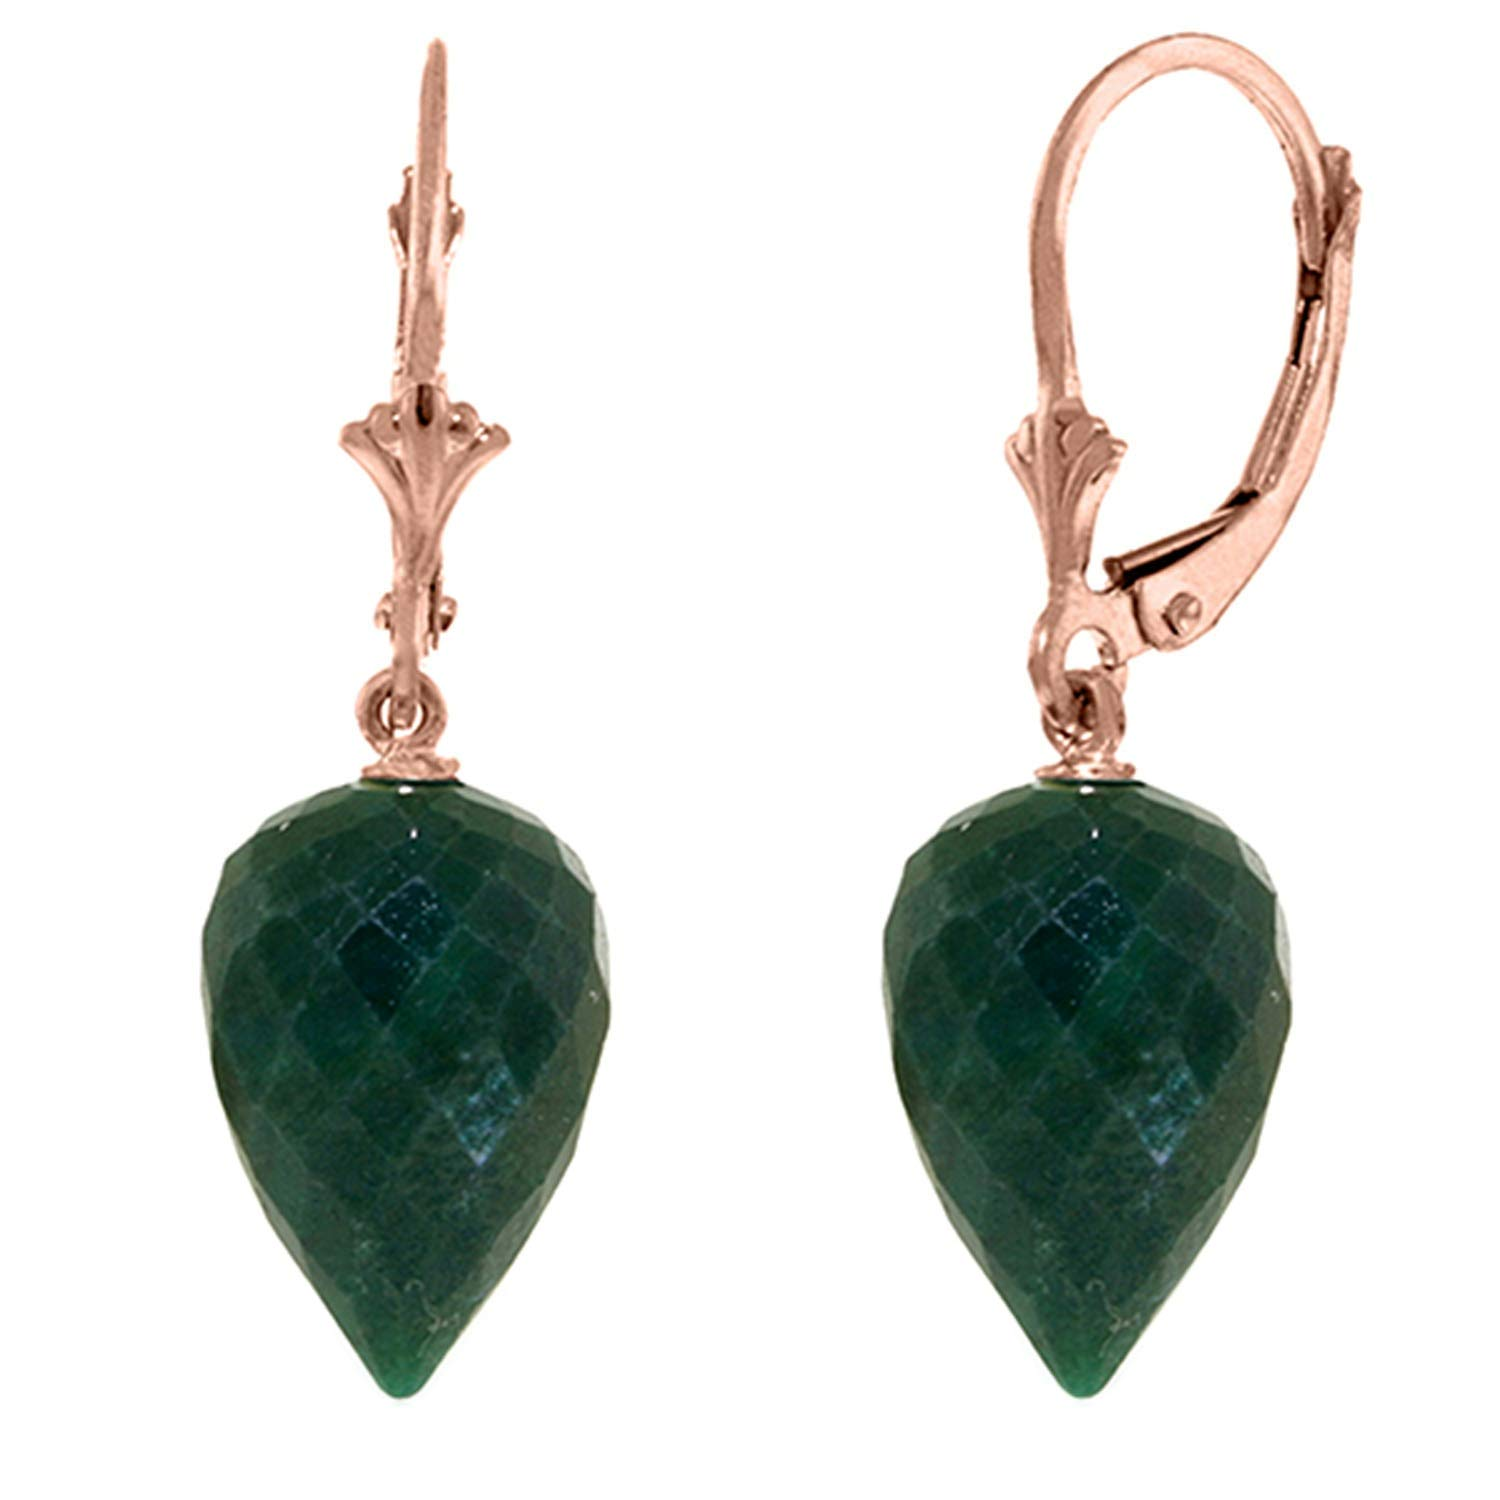 Galaxy Gold 14k Solid Rose Gold Leverback Earrings with Drop Briolette Natural Emeralds by Galaxy Gold